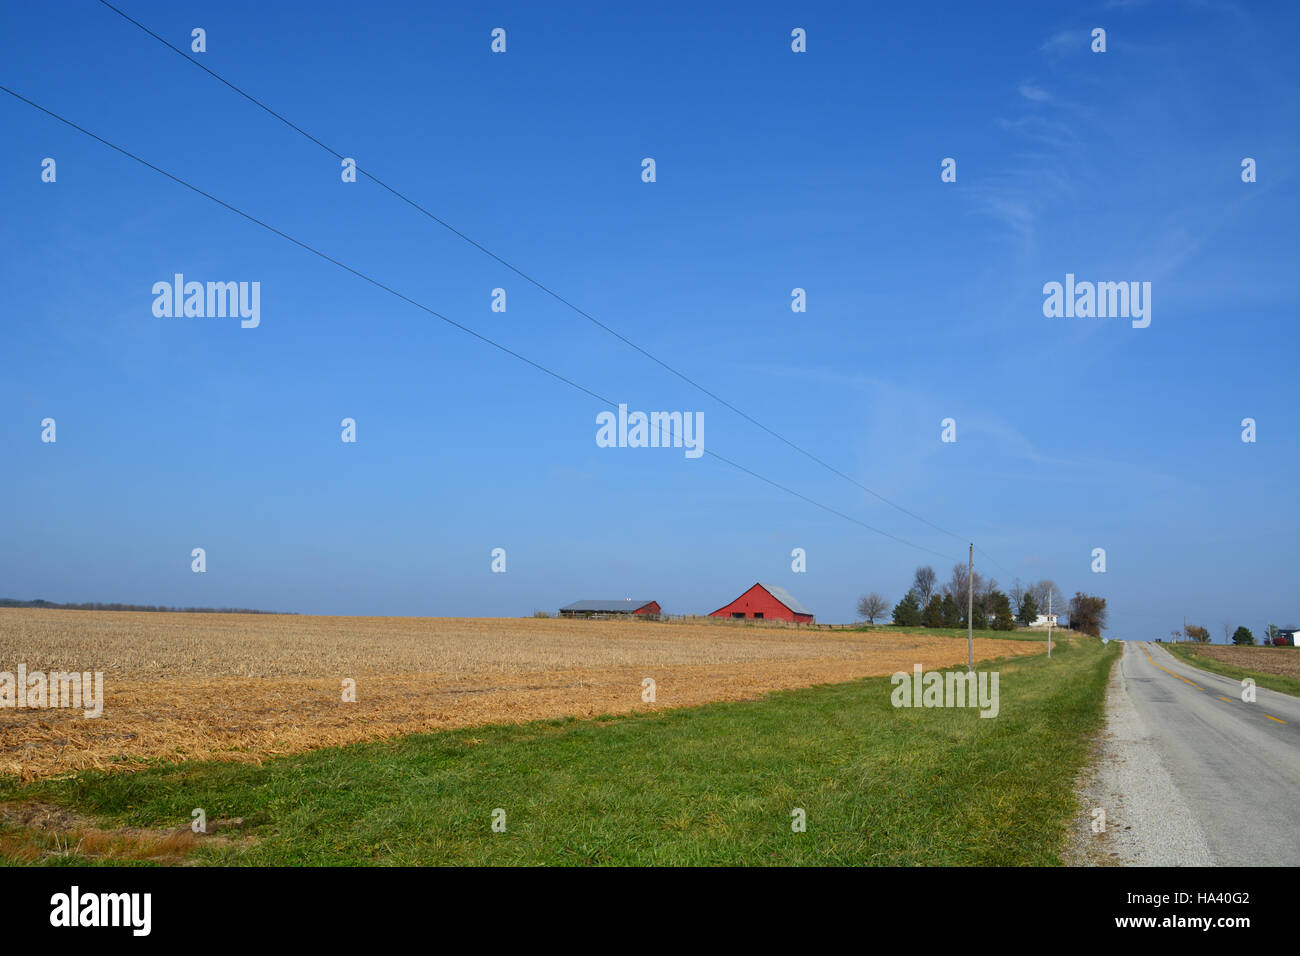 Farm fields in the Midwestern states are harvested in advance of winter. - Stock Image